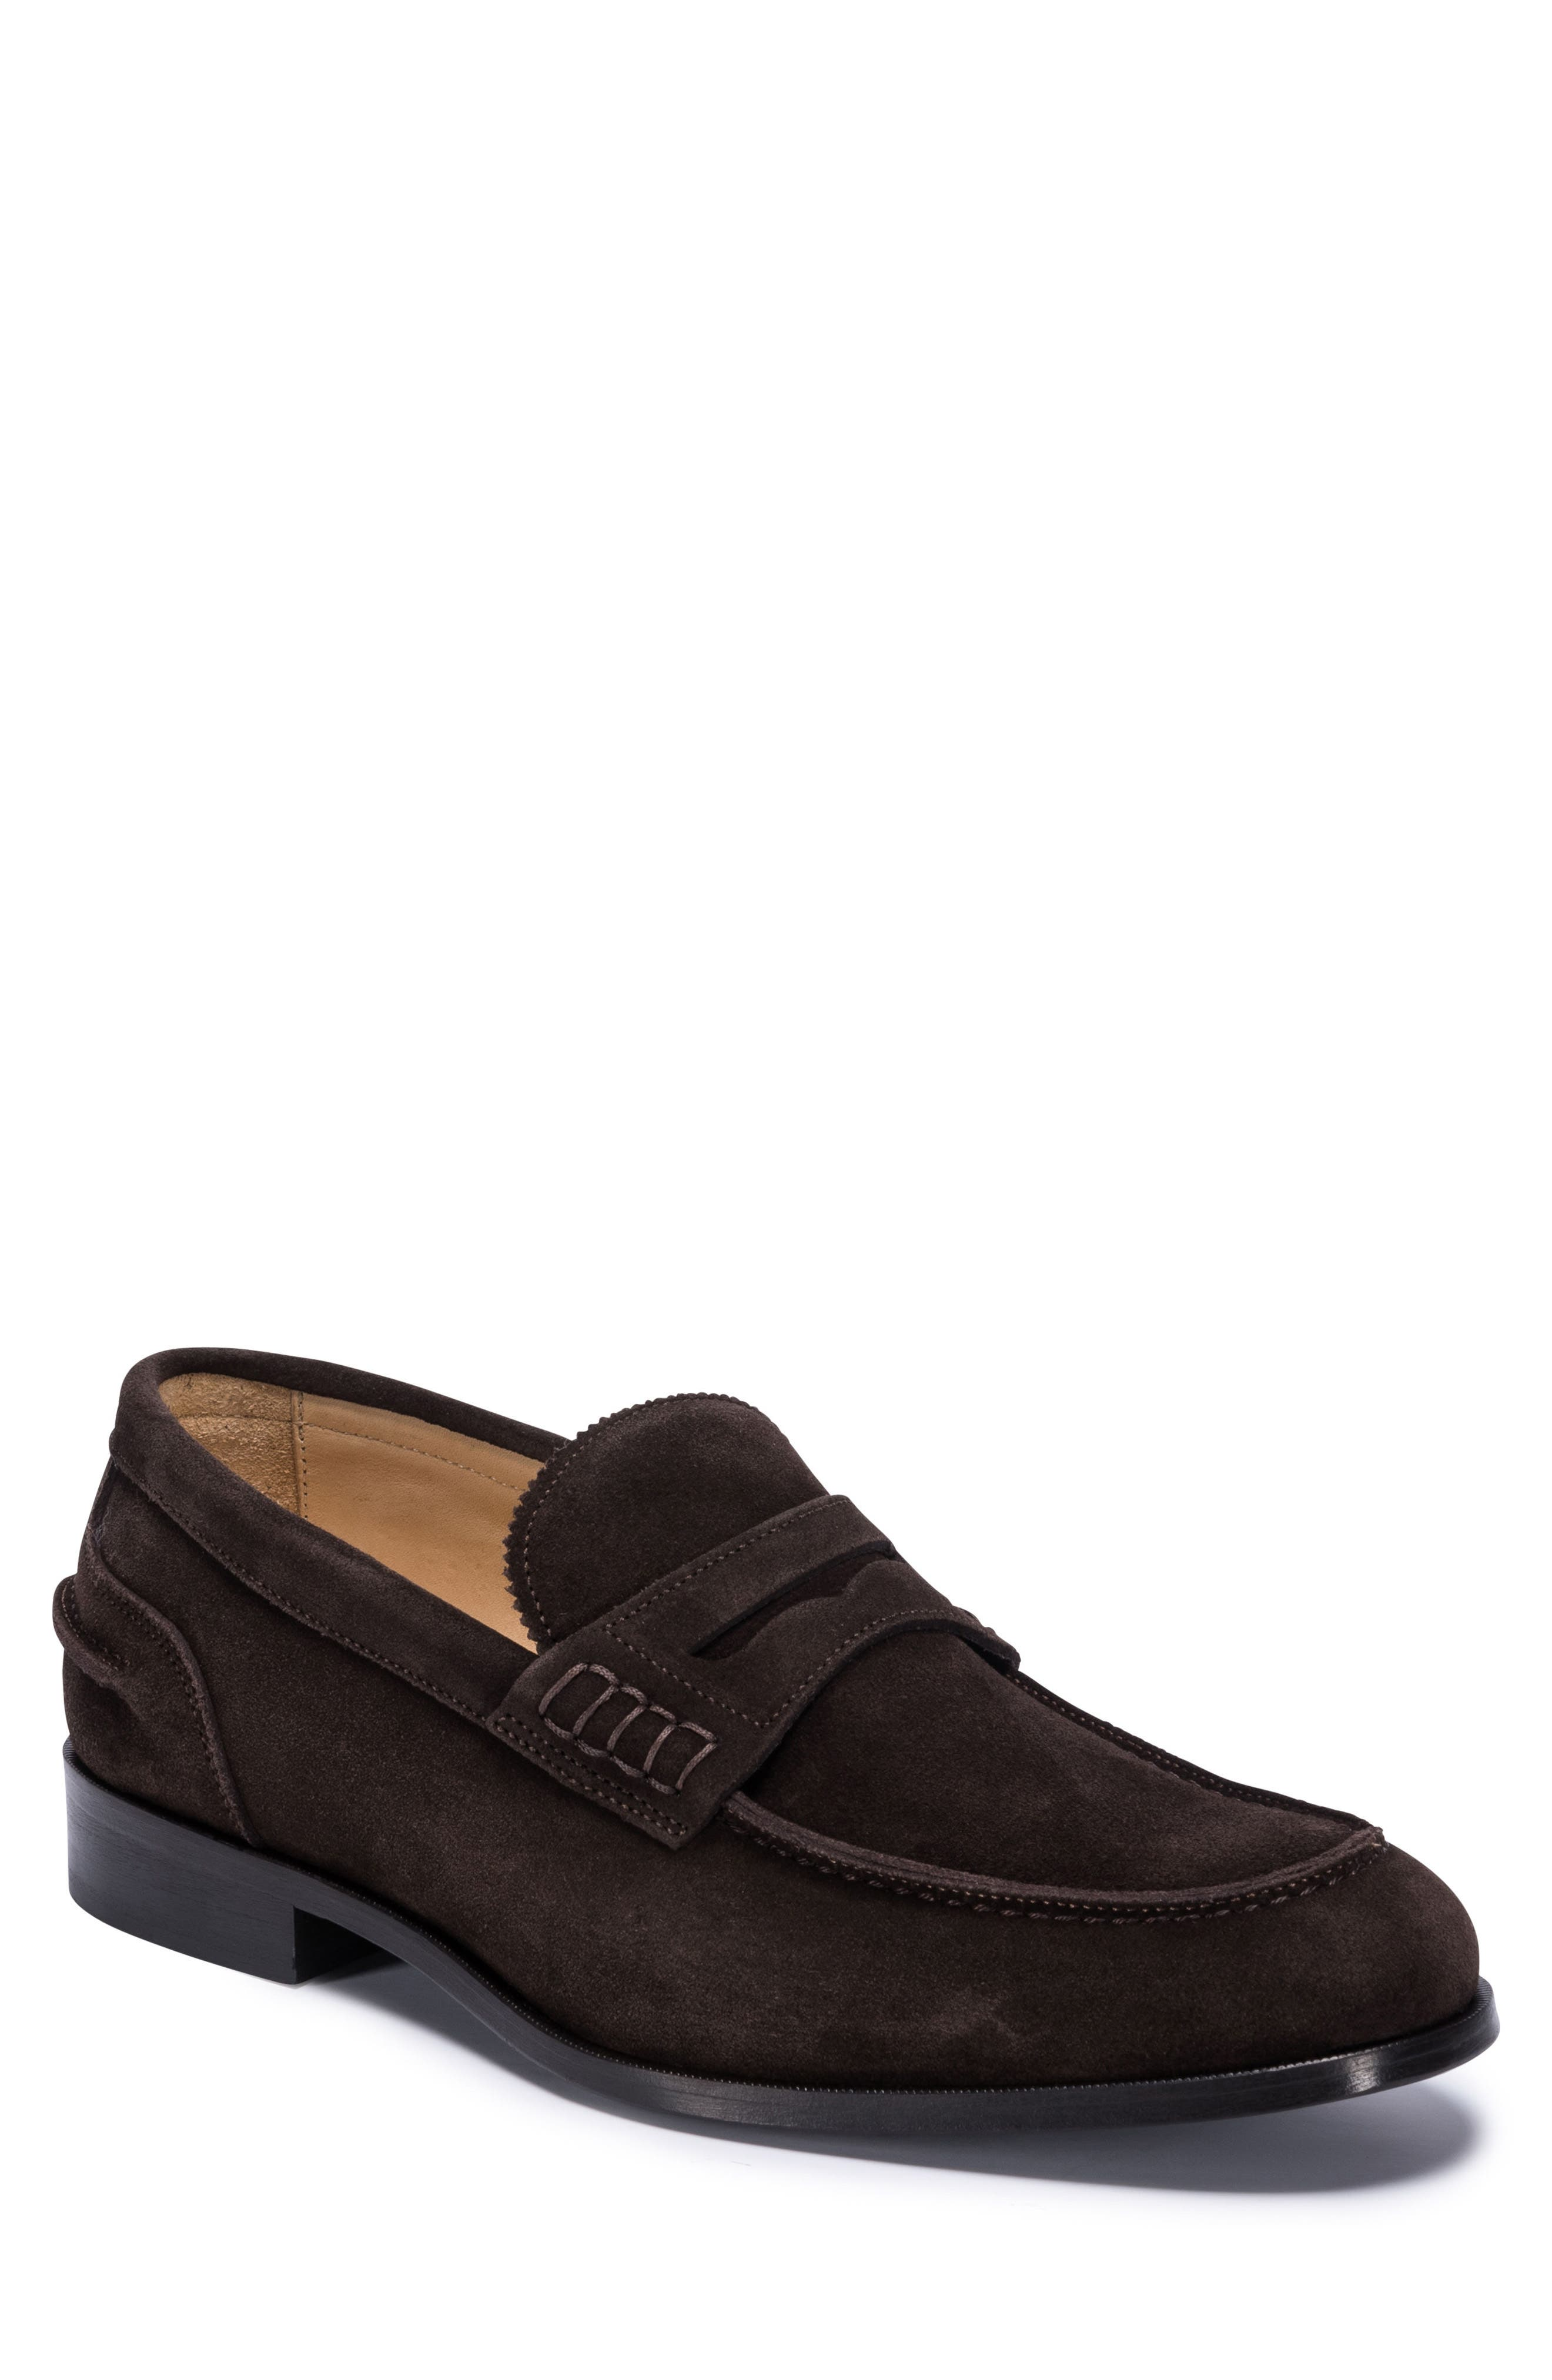 Torino Penny Loafer,                         Main,                         color, BROWN SUEDE